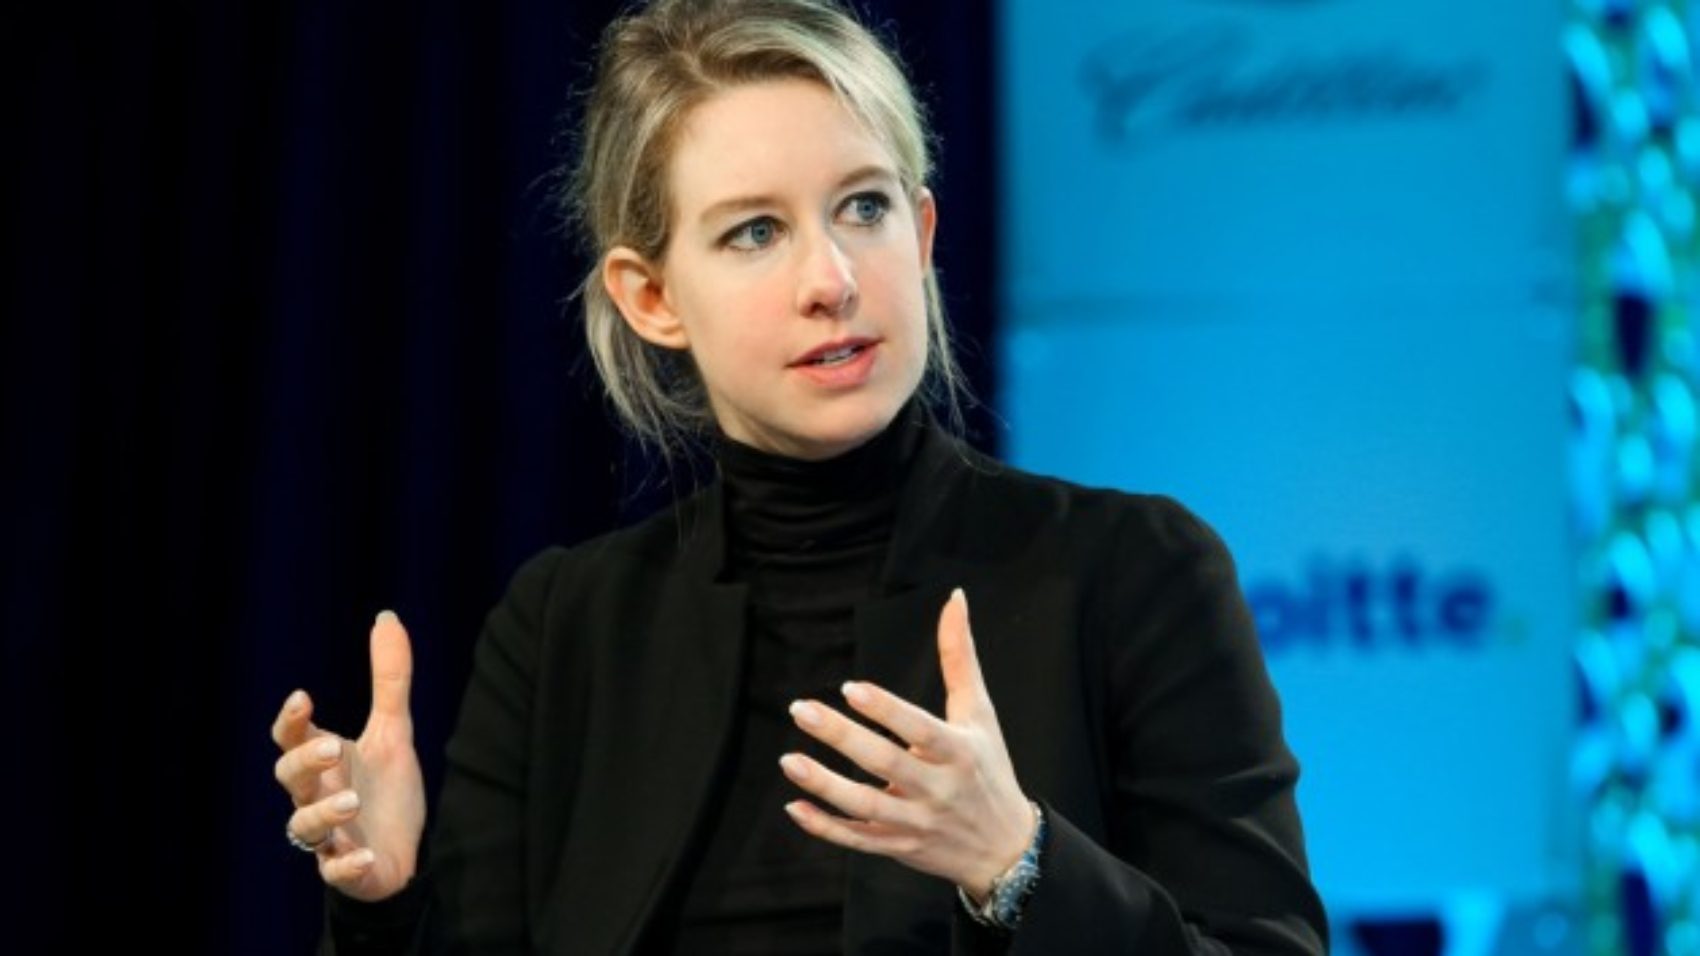 Executive-Officer-of-Theranos-Elizabeth-Holmes-speaks-at-Fortune-Most-Powerful-Women-Conference-629x420